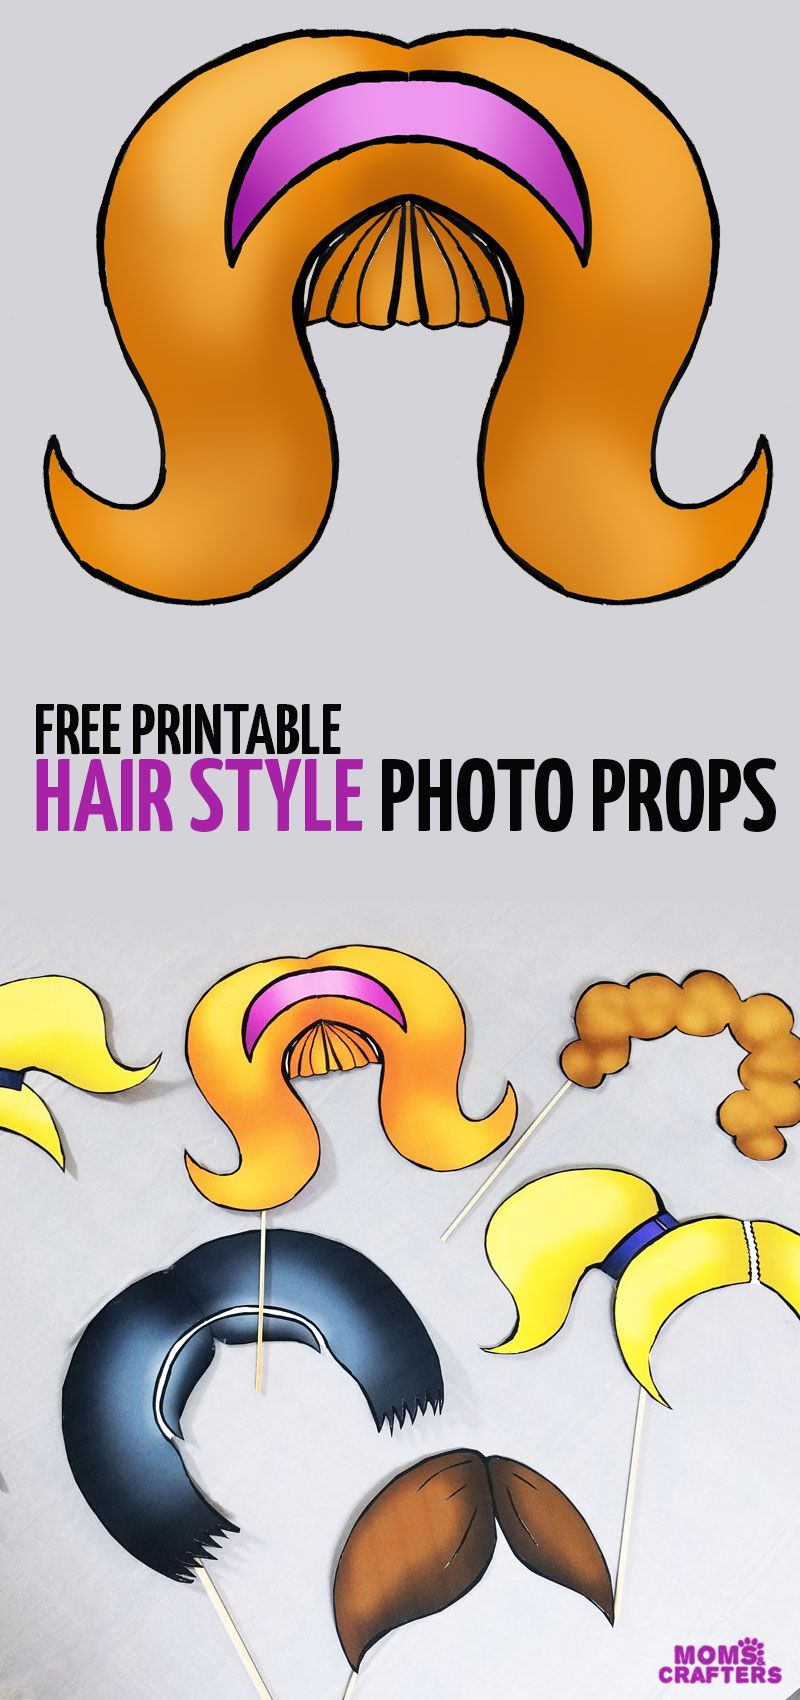 These Free Printable Photo Booth Props Are So Adorable Great For Dress Up Dramatic Play Photo Booth Props Free Printables Diy Photo Booth Kids Photo Booth